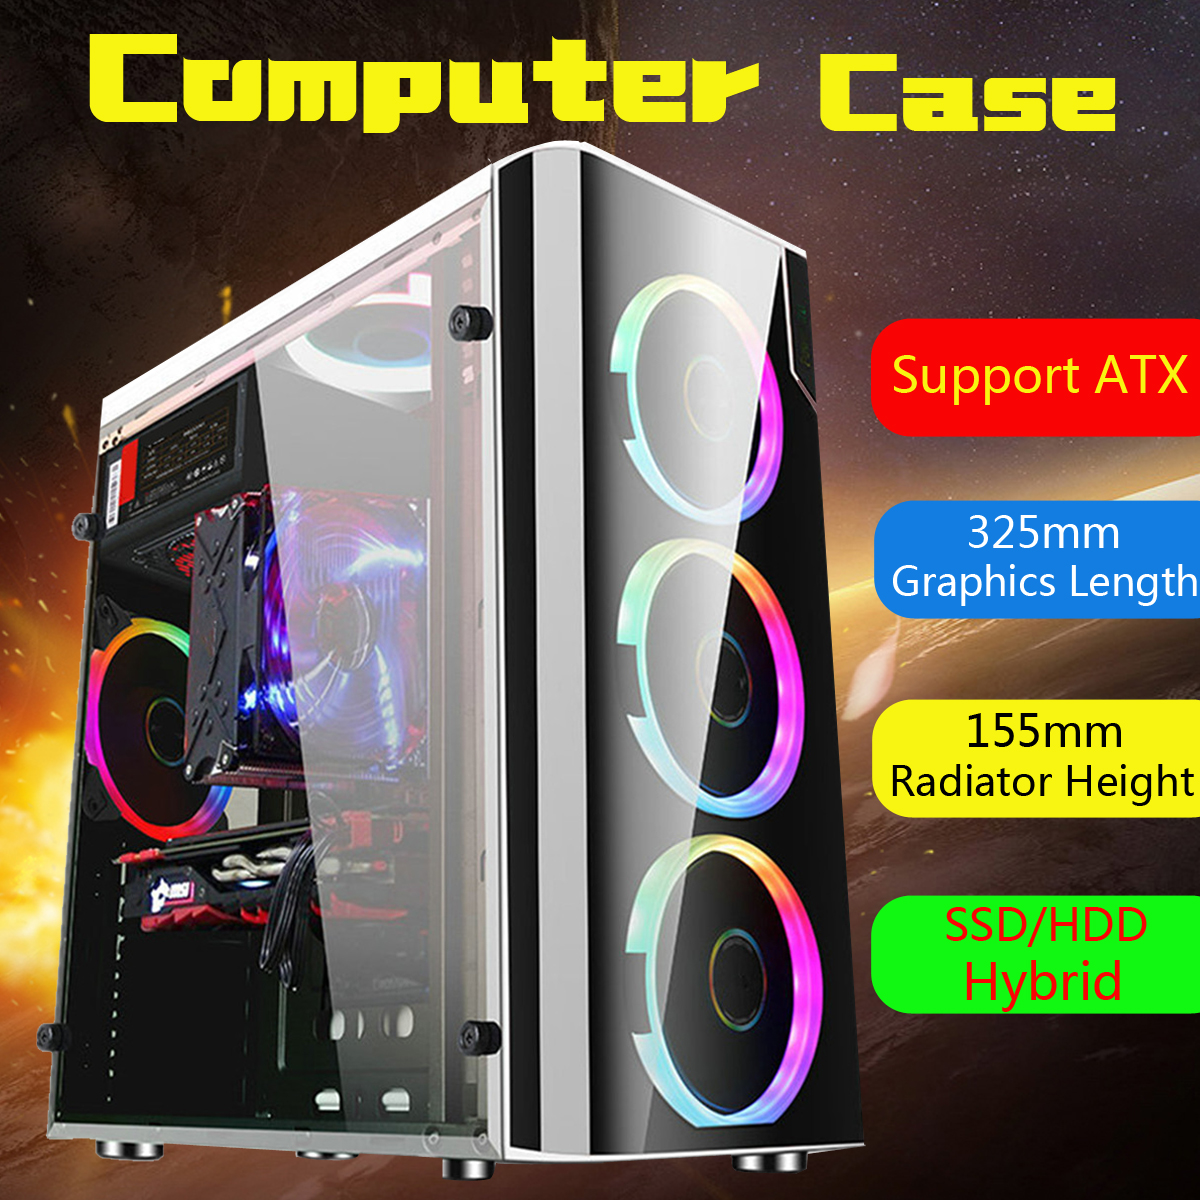 Pcyes Saturn Astros Desktop Mid Tower Computer Case with Acrylic Window Side 3 Fans Black//RGB